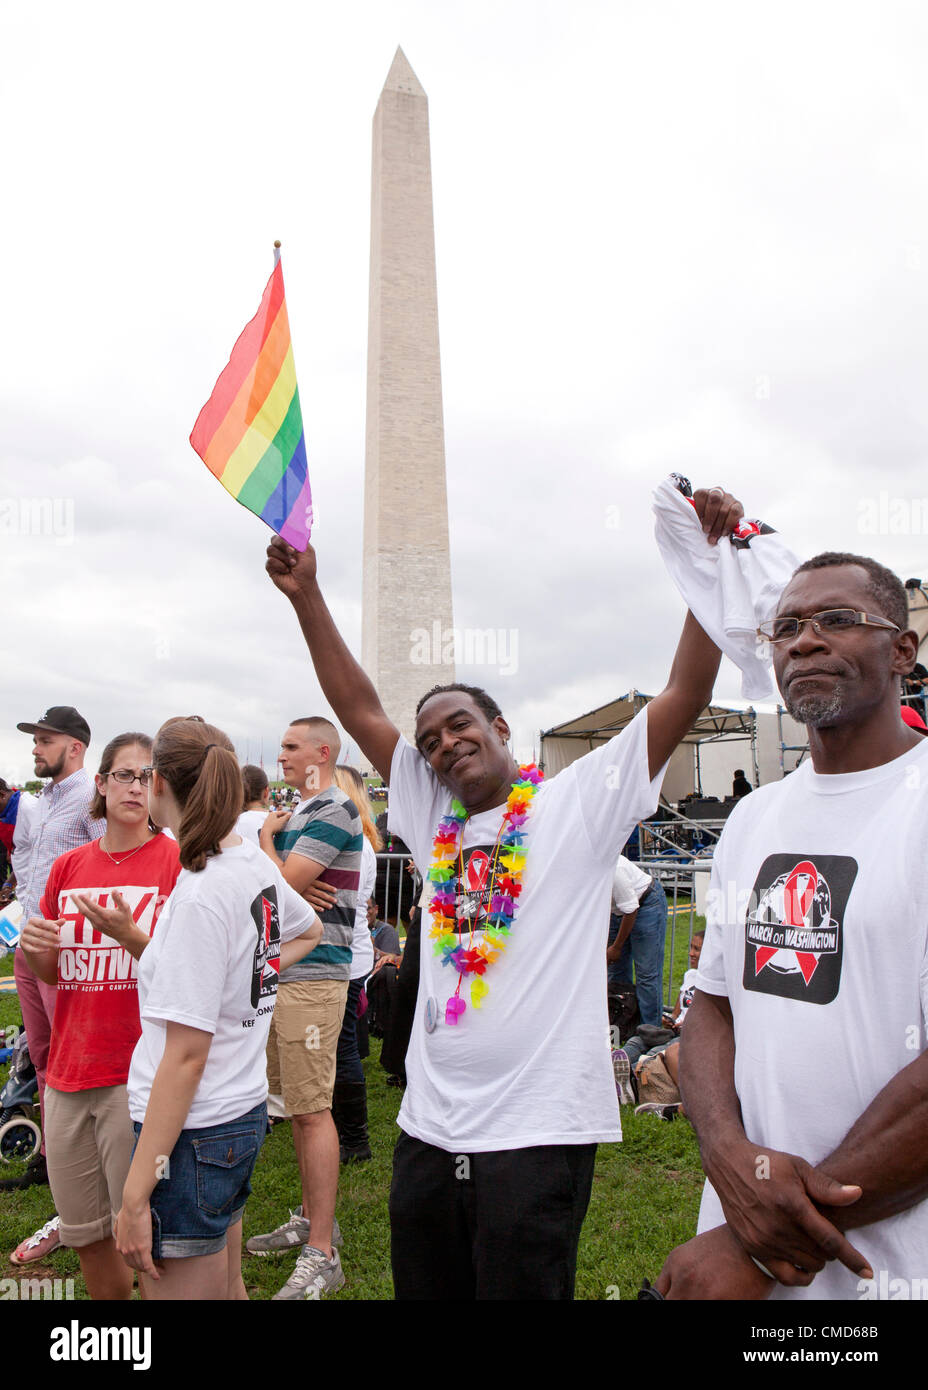 A man waves a rainbow flag in front of the Washington monument in Washington, DC - Sunday, July 22, 2012 Stock Photo